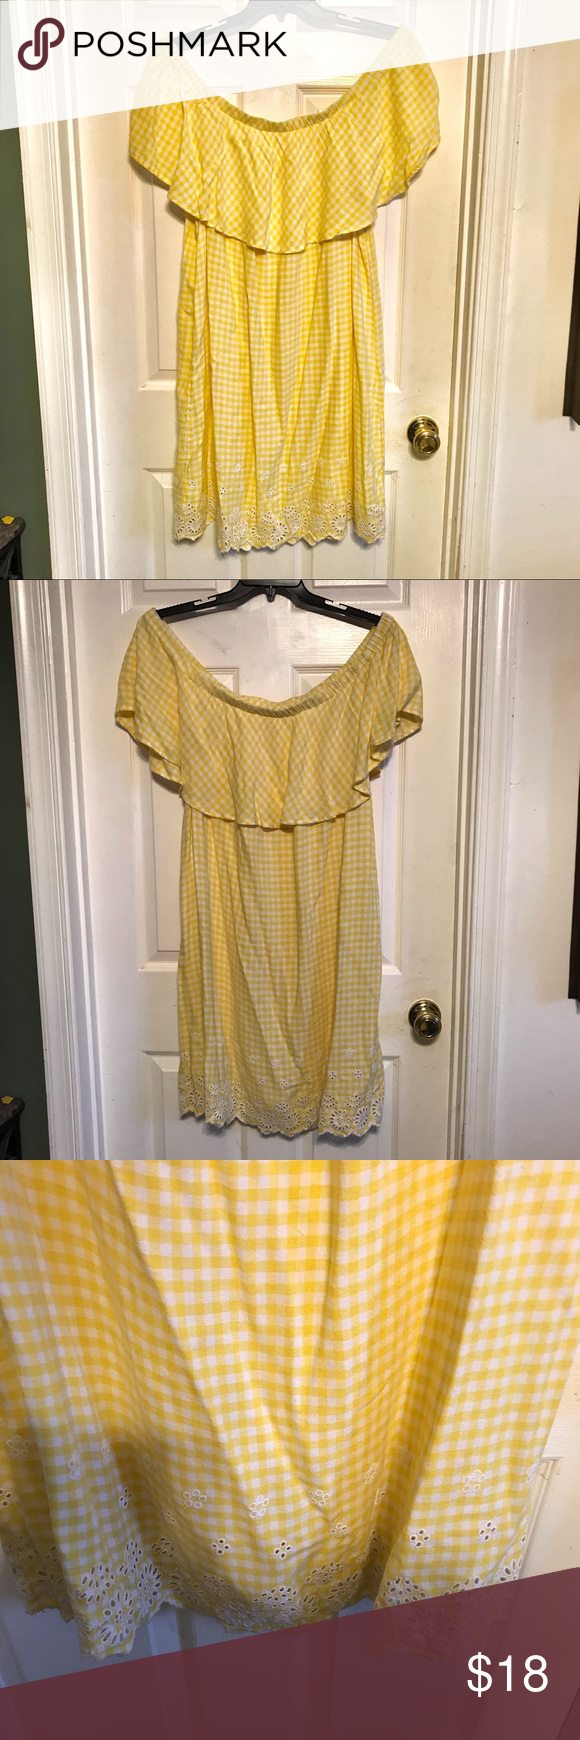 Old Navy Off Shoulder Yellow Dress Yellow Dress Yellow And White Dress Navy Midi Dress [ 1740 x 580 Pixel ]